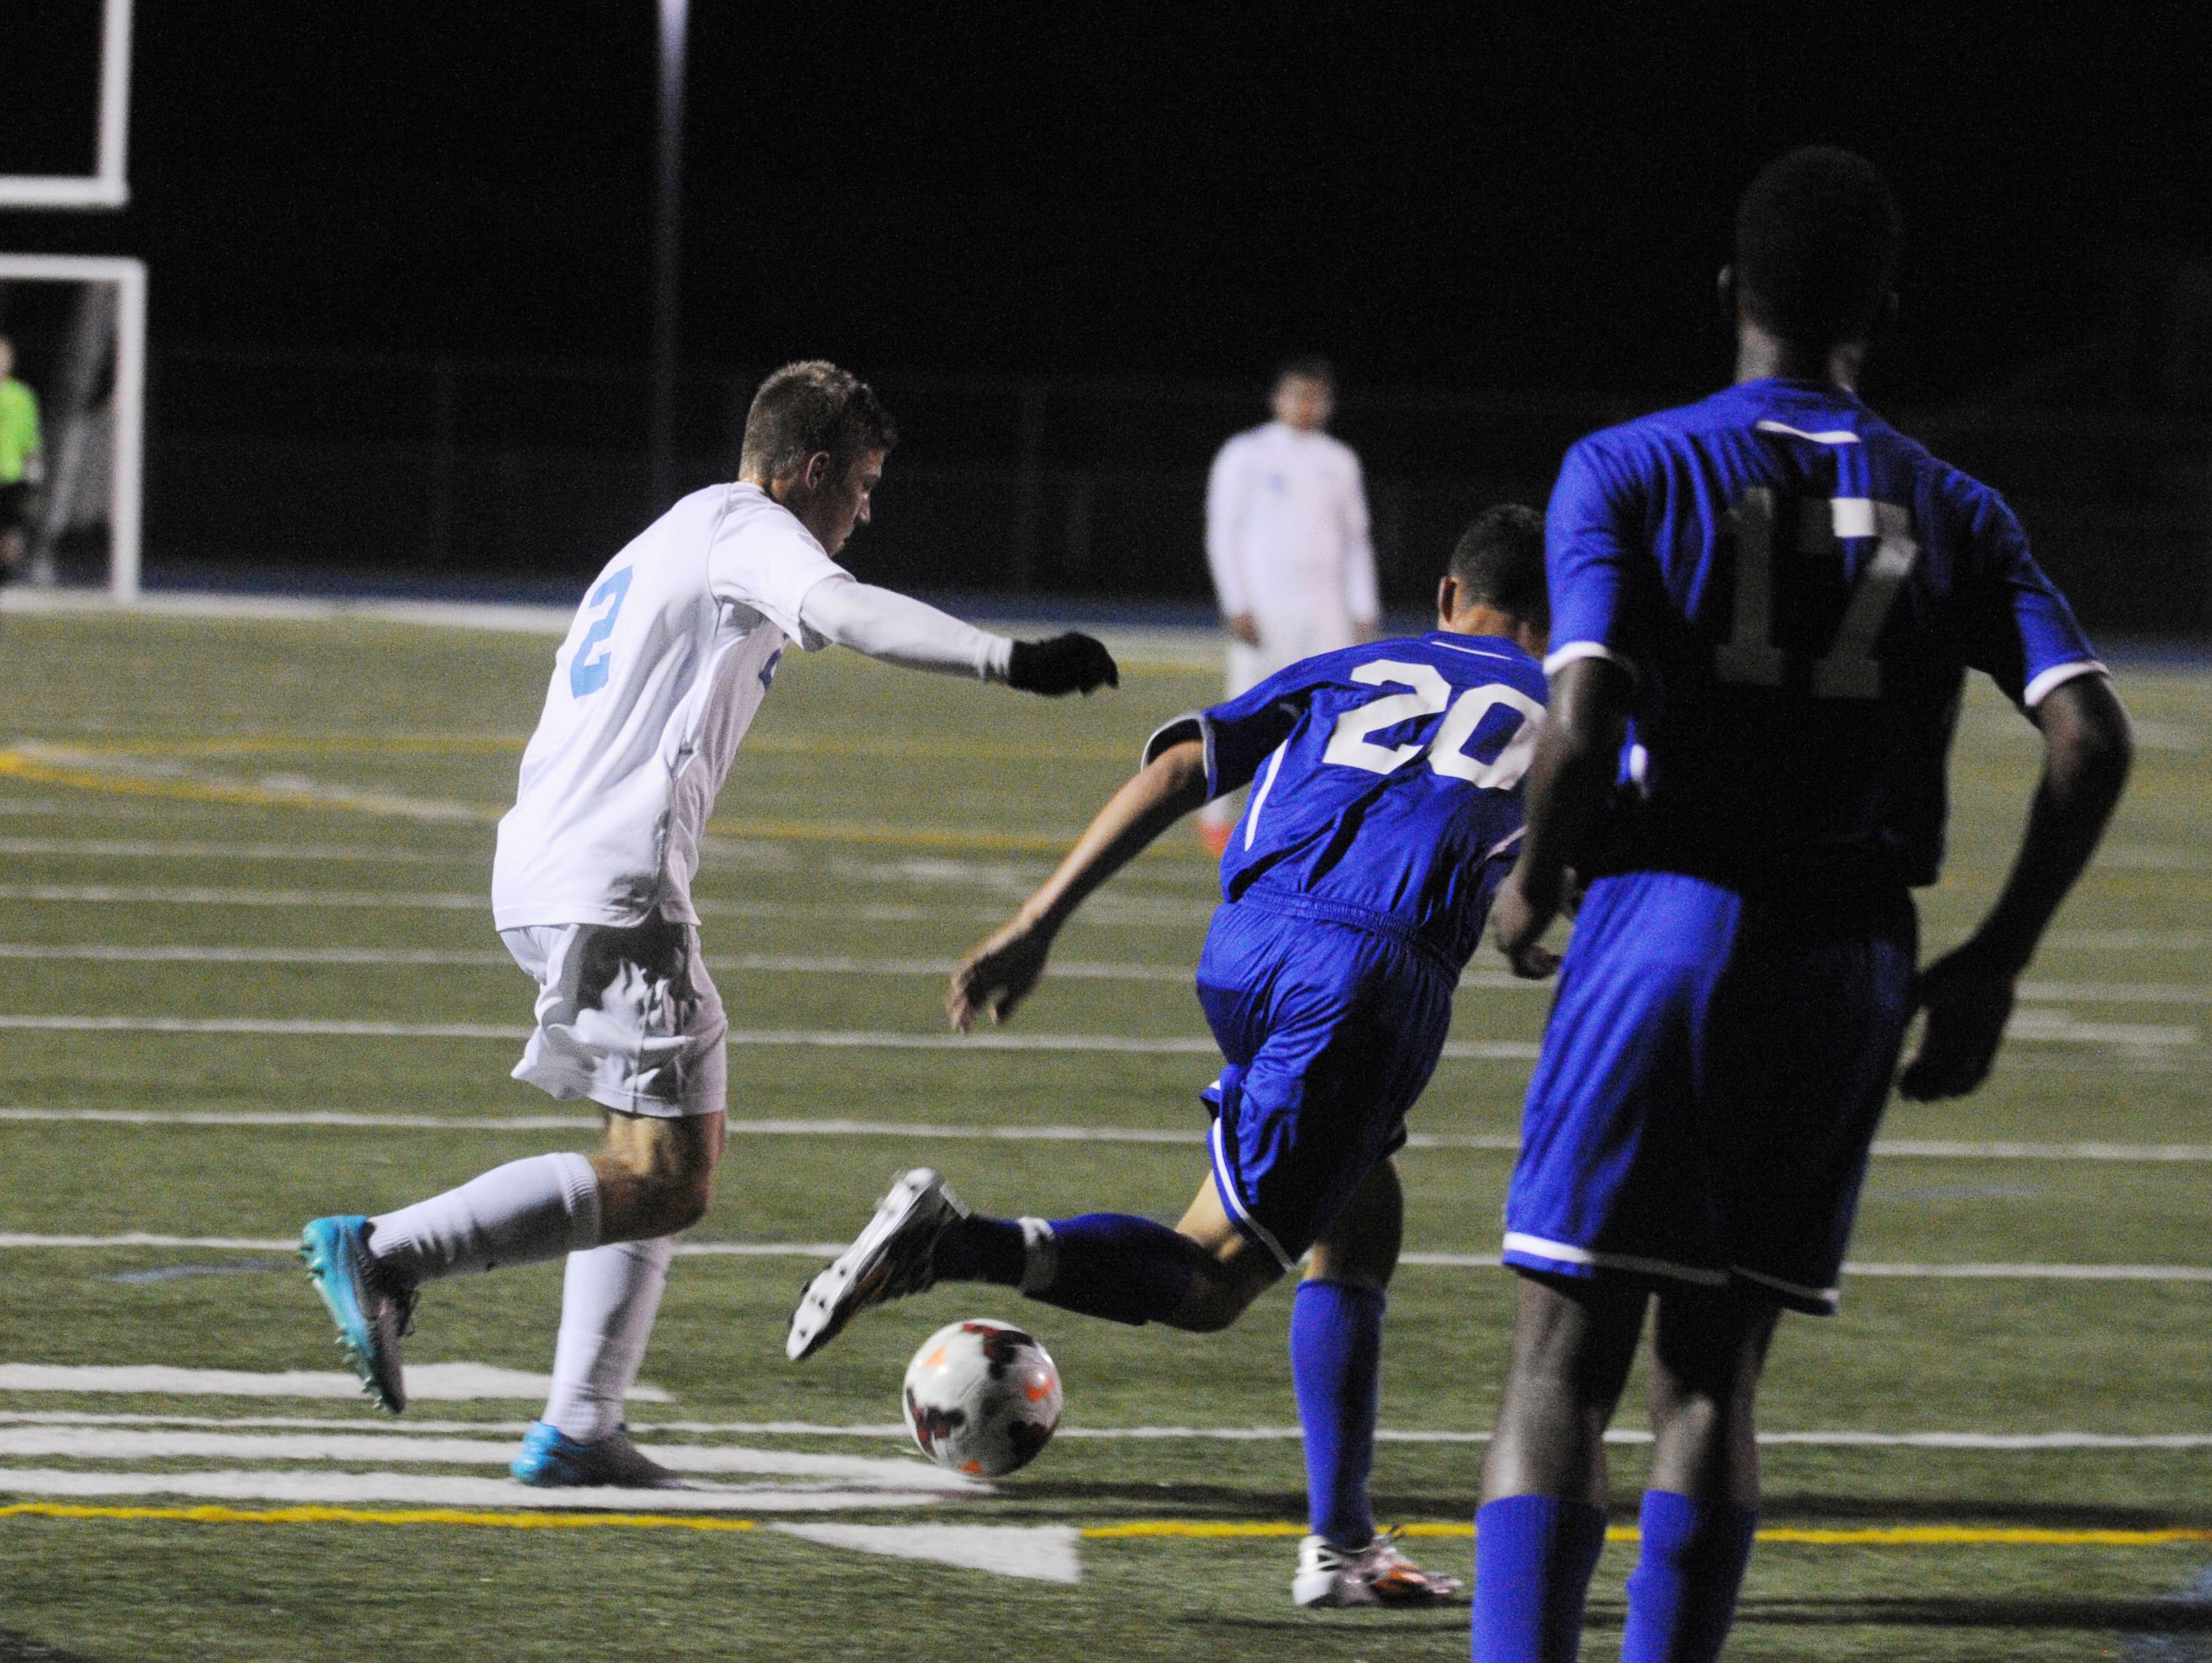 Cape Henlopen senior Jack Ashby (2) prepare to take a shot and score in the season finale against Dover.